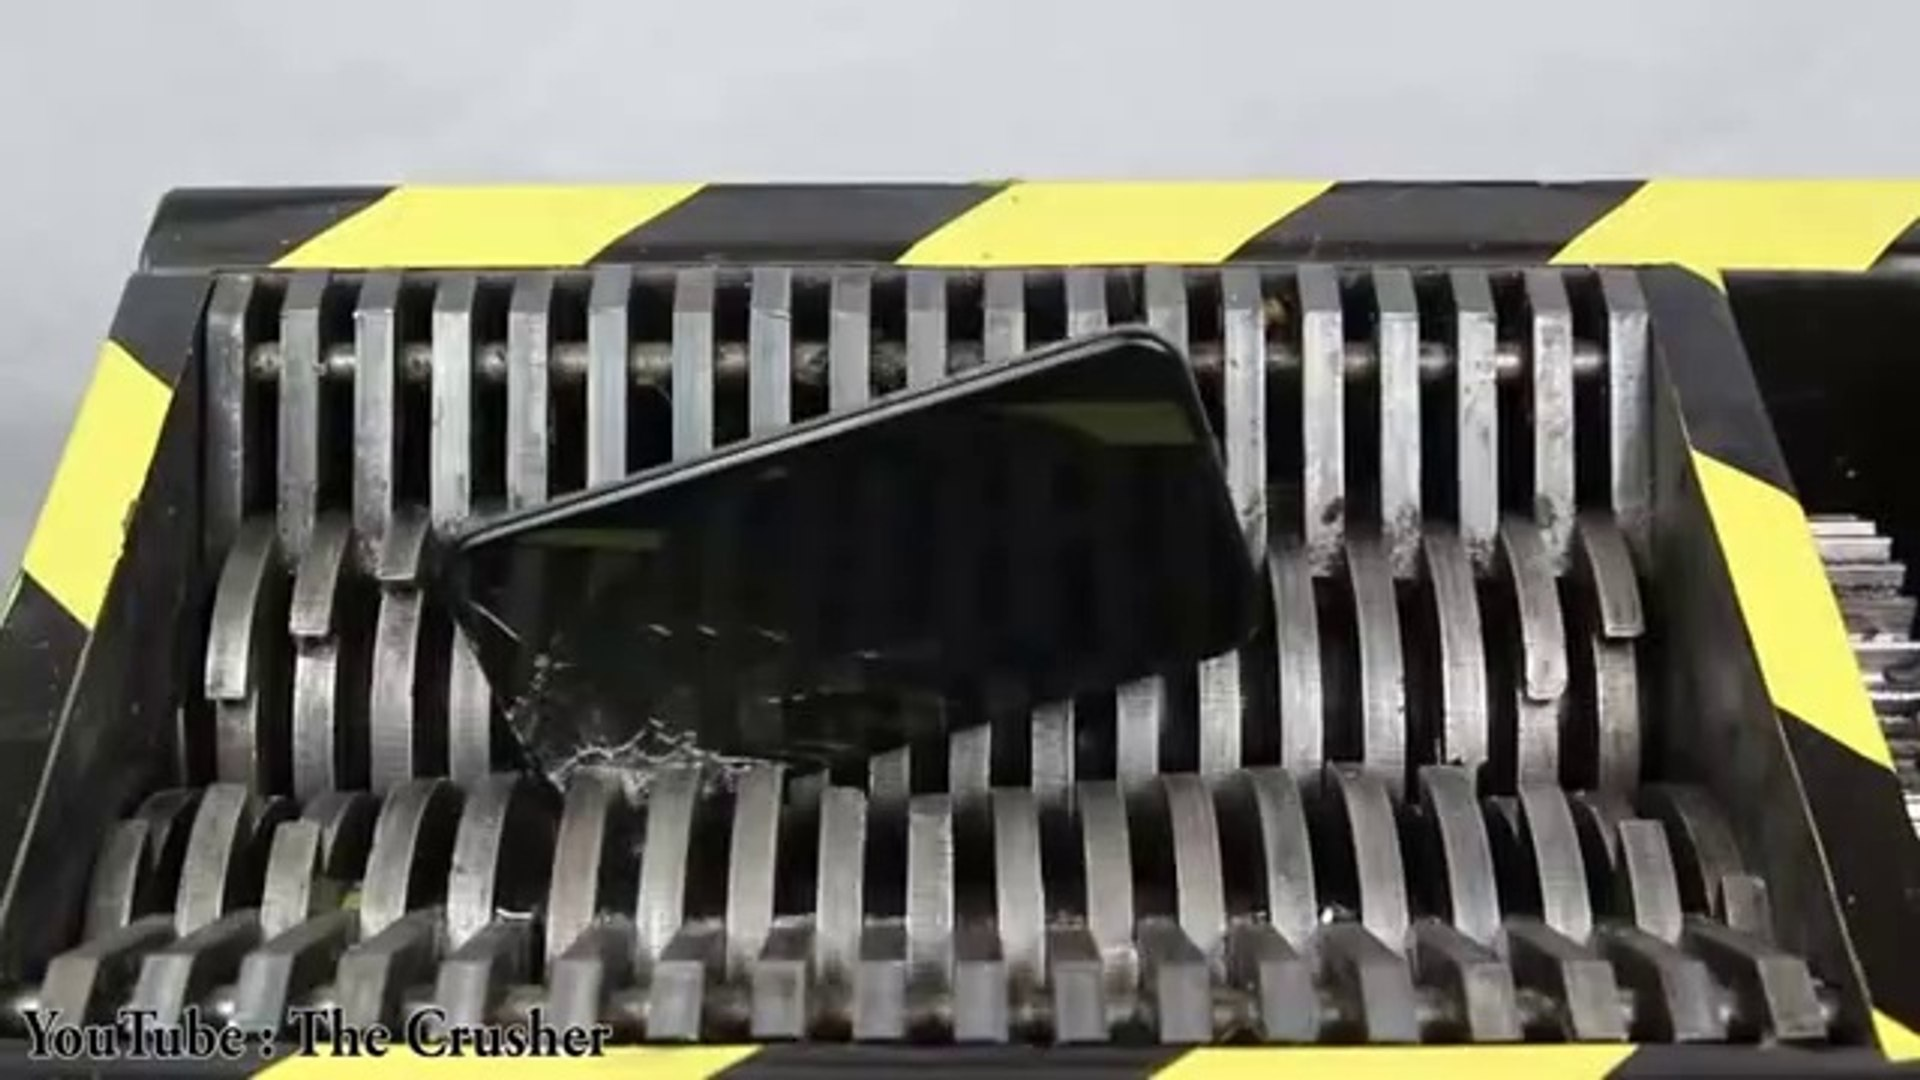 Experiment Shredding Apple Iphone X And Toys So Satisfying - The Crusher